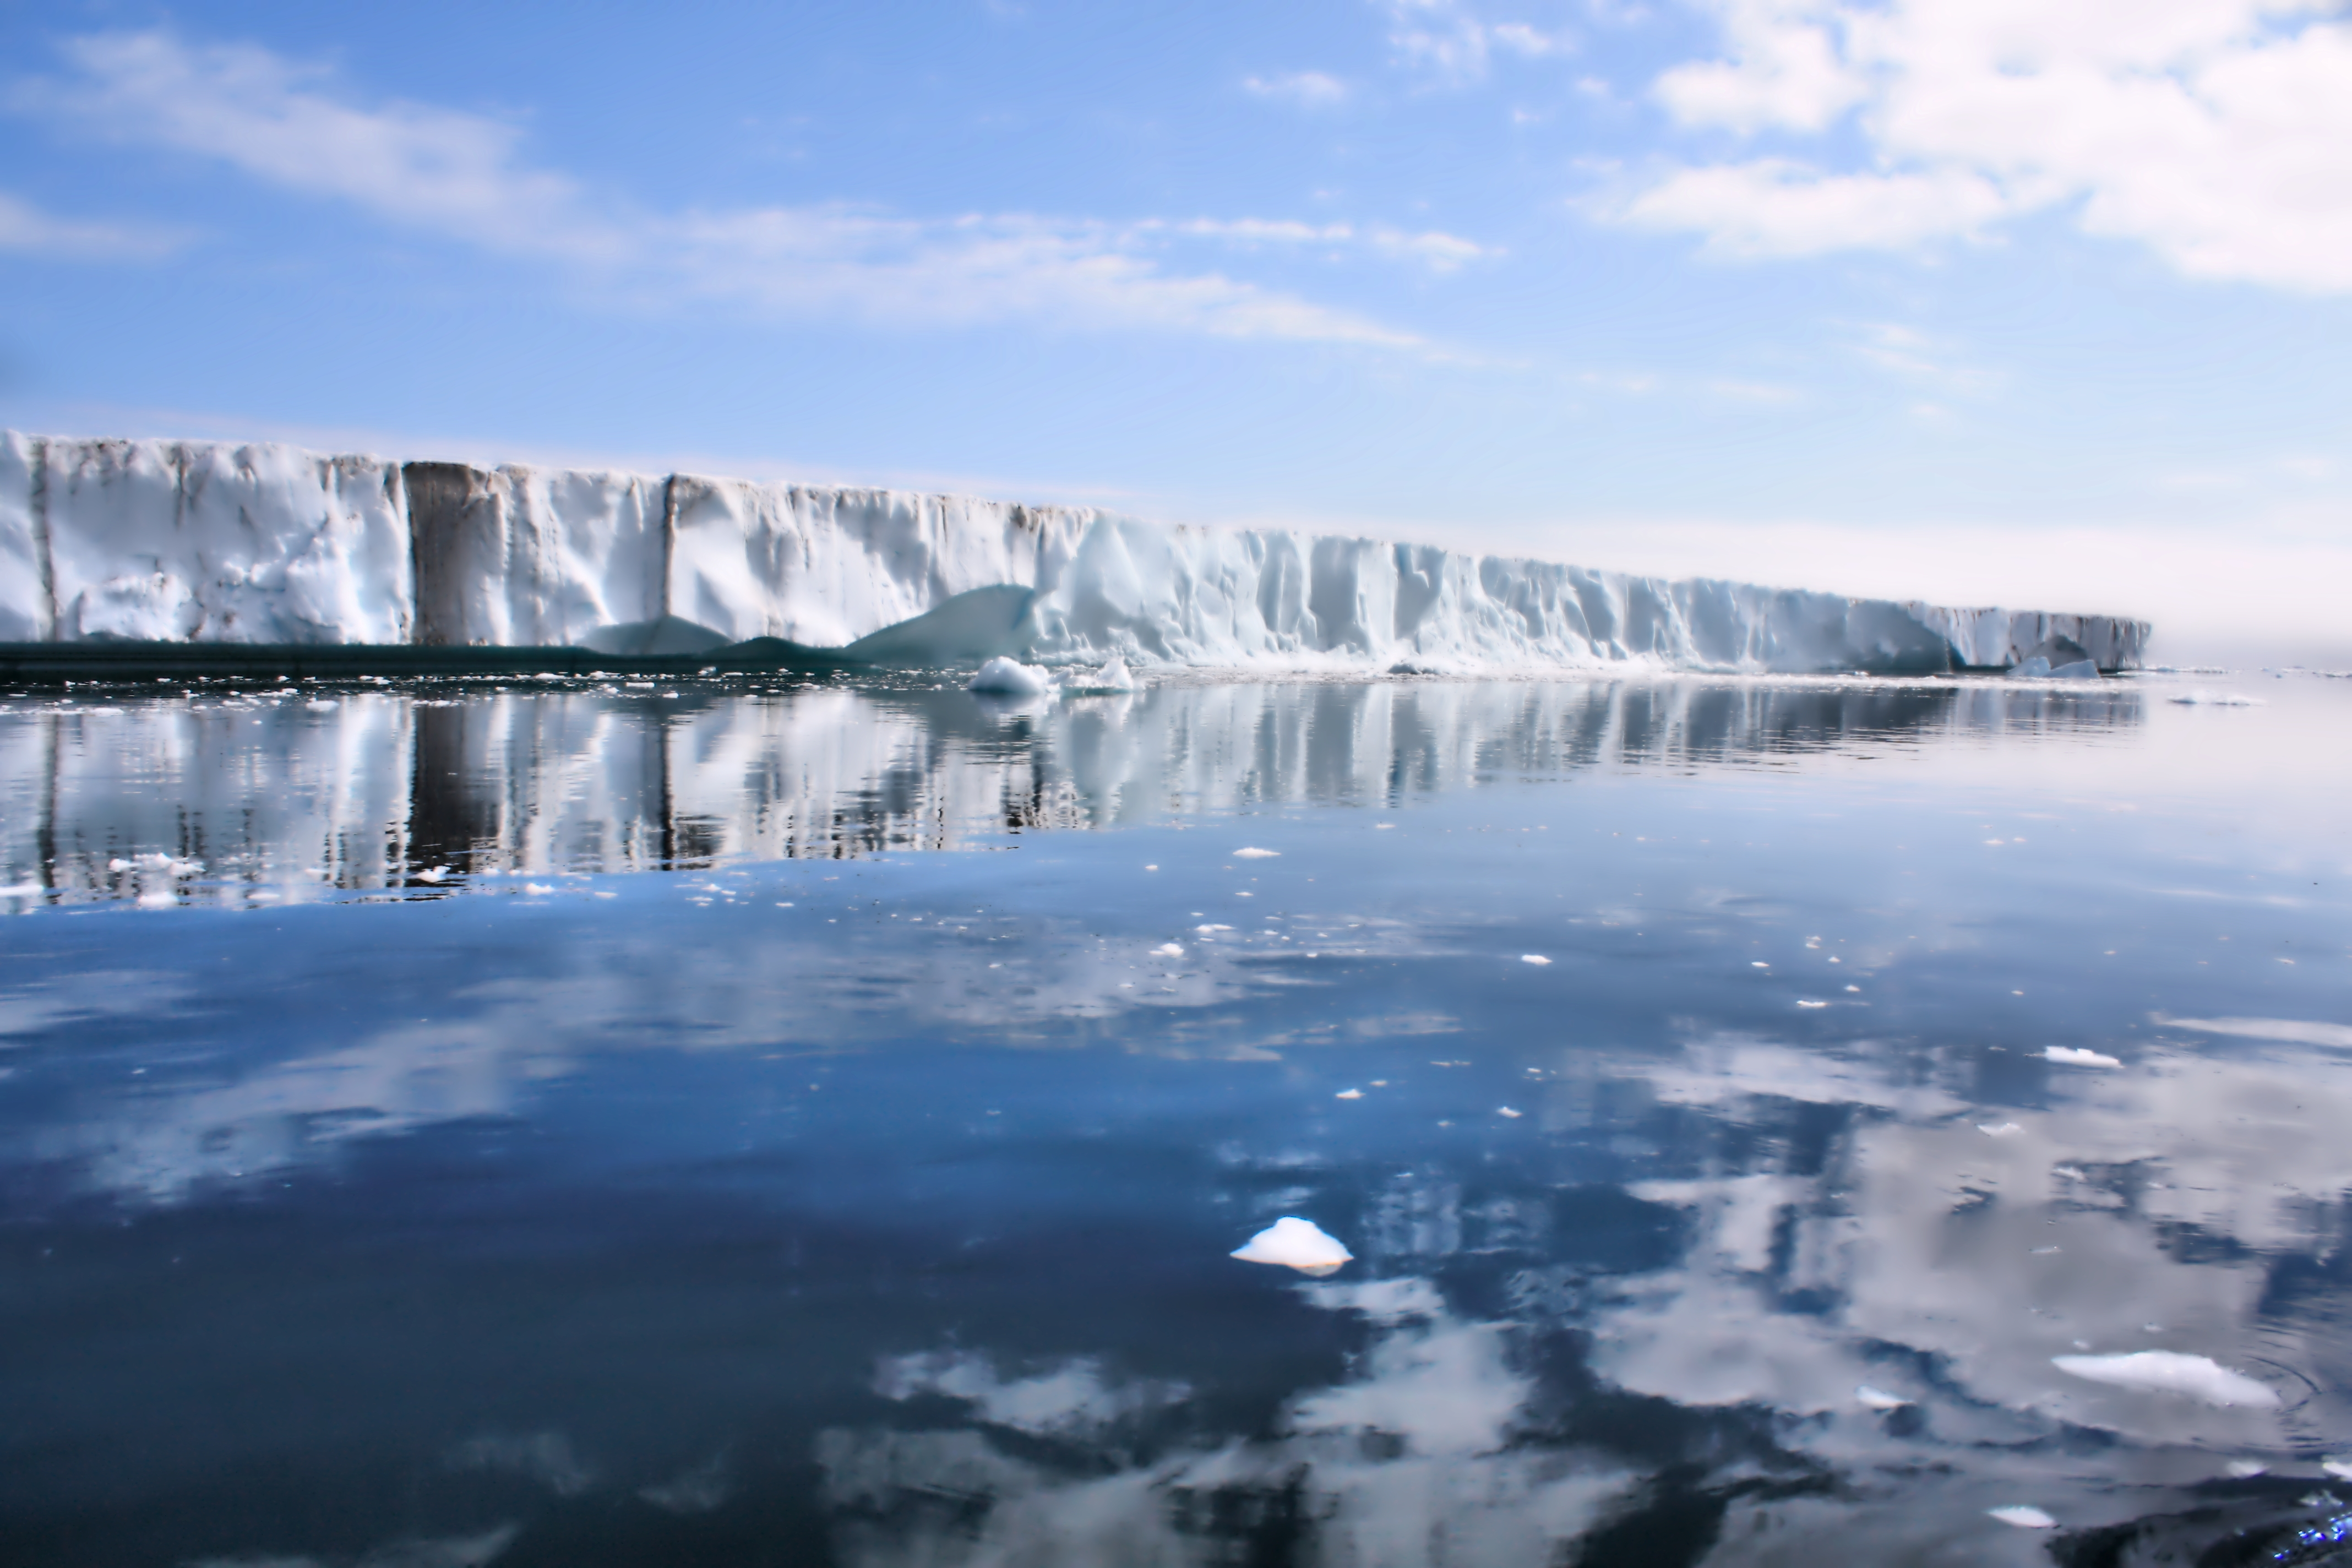 East Greenland Ice Sheet: WikiPedia